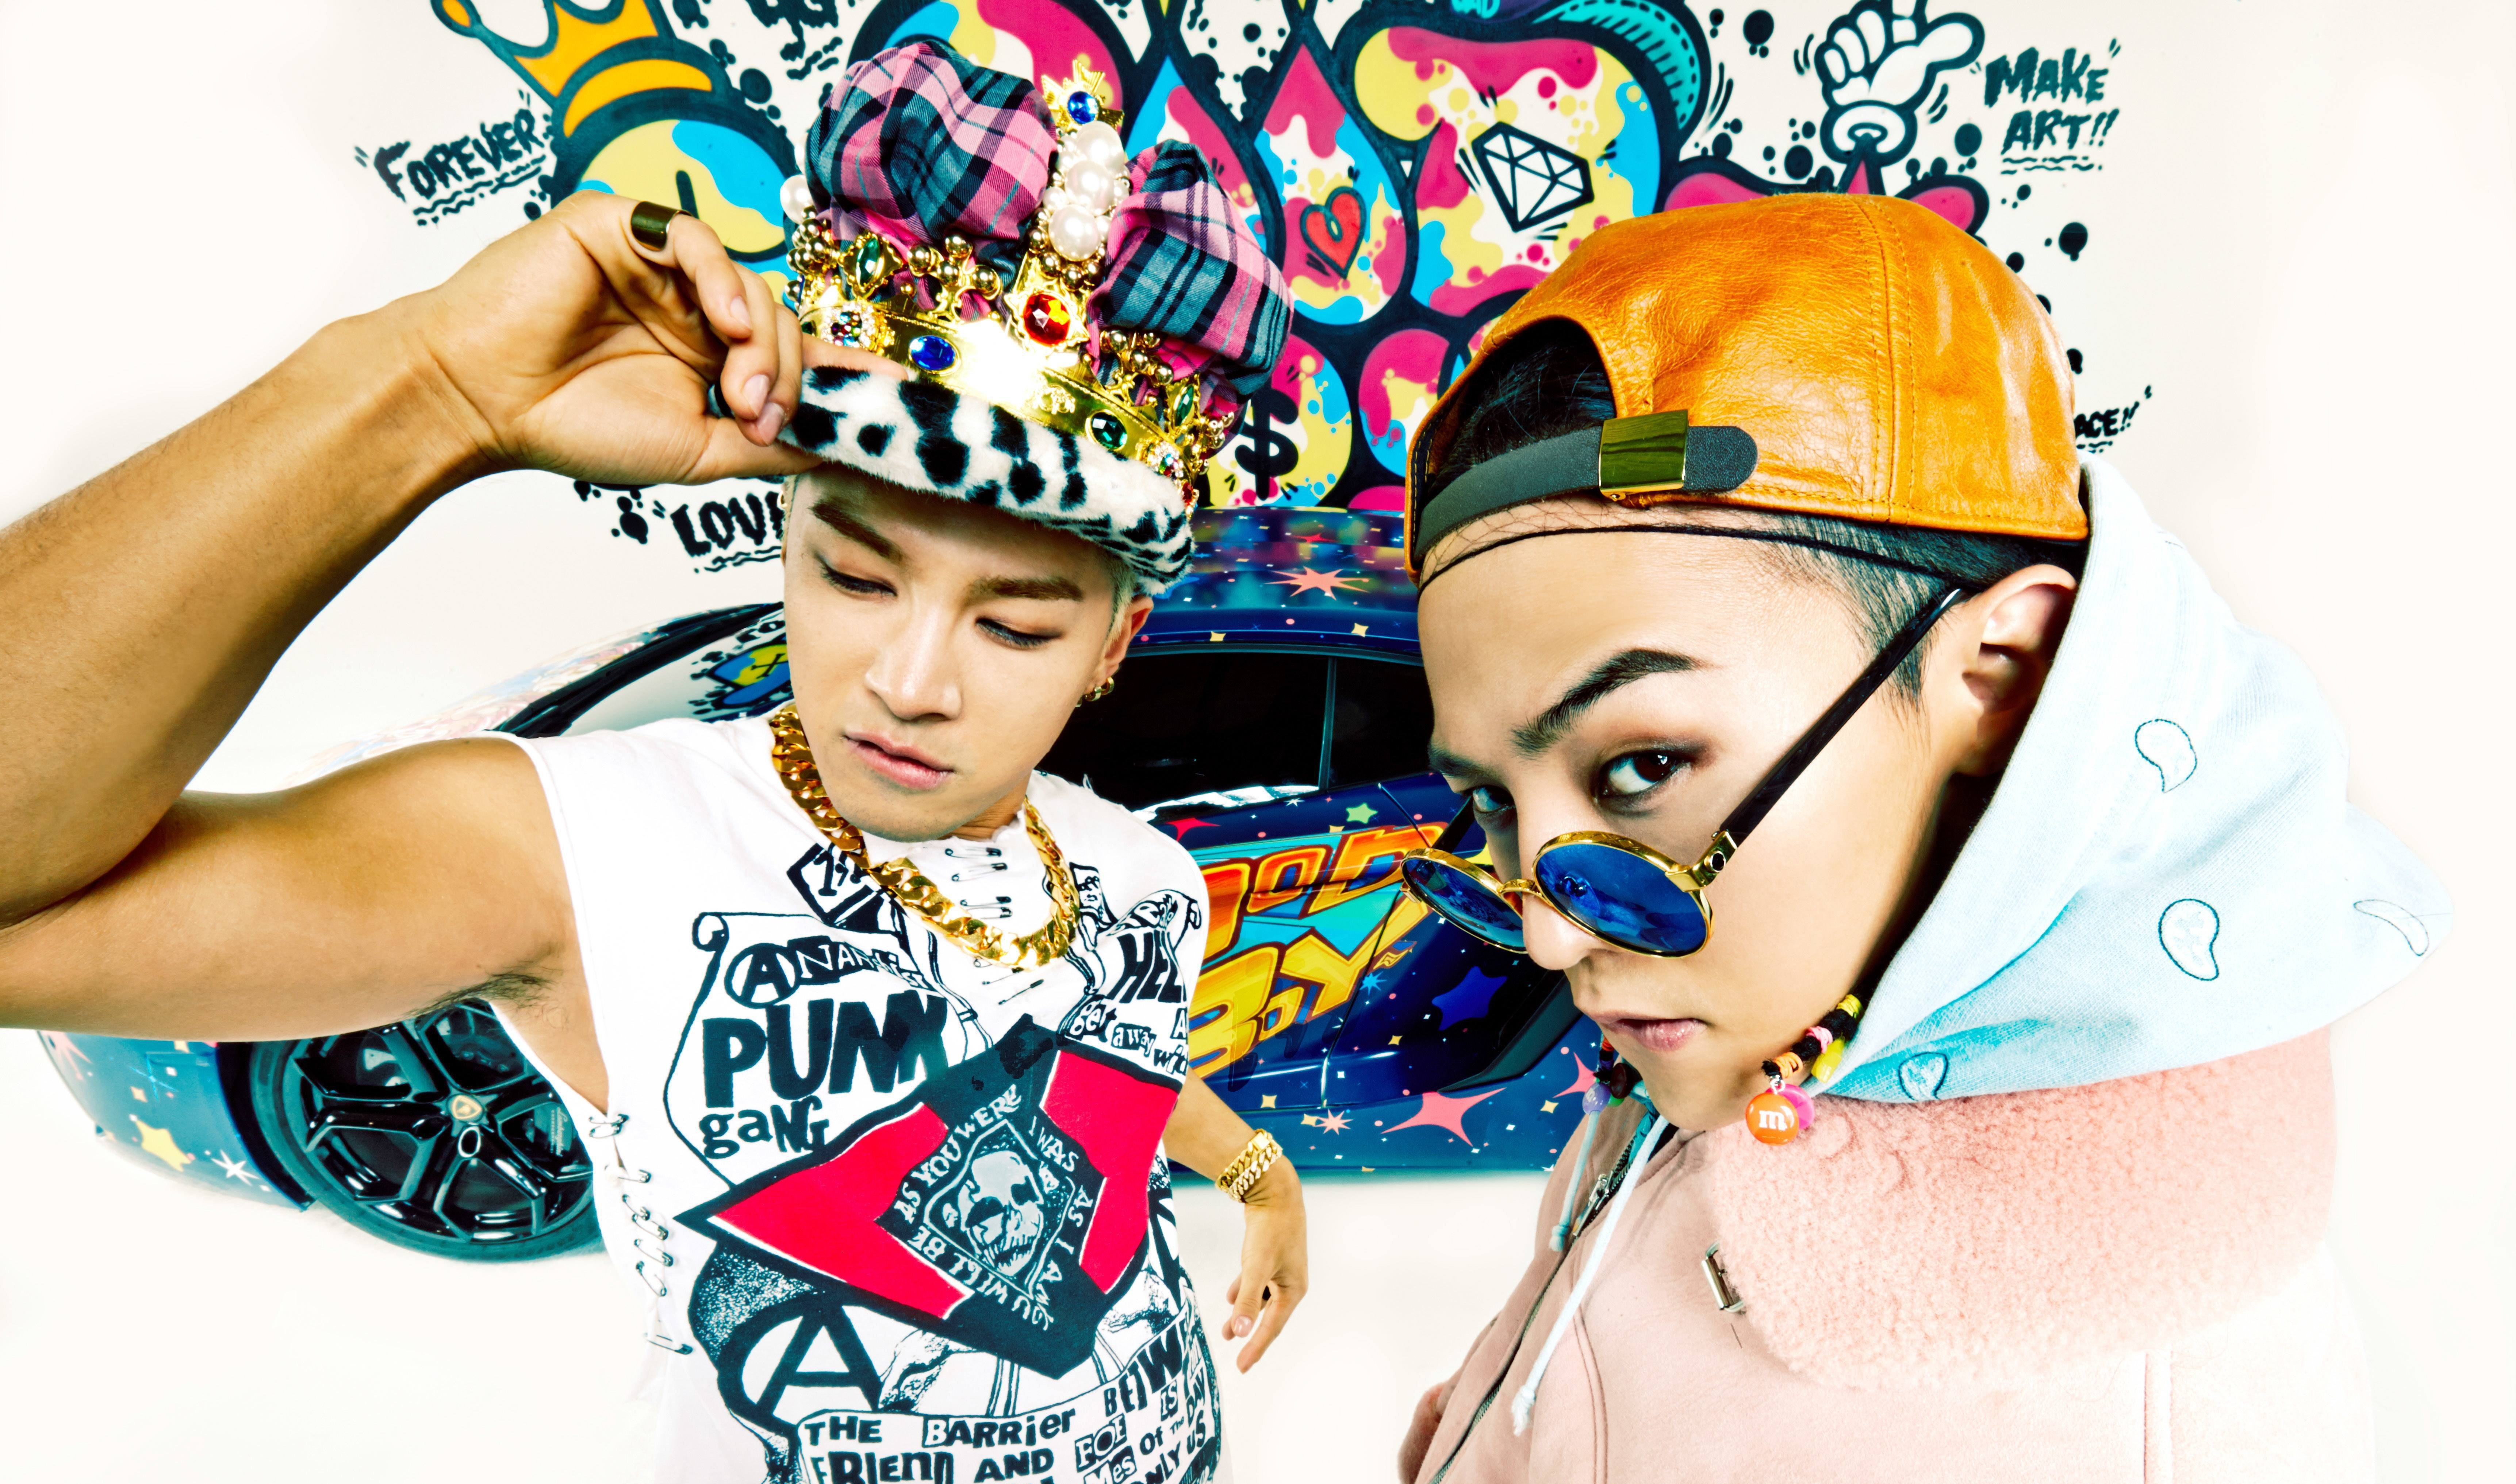 DRAGON BigBang kpop kpop pop dragon dance wallpaper  6892x4066